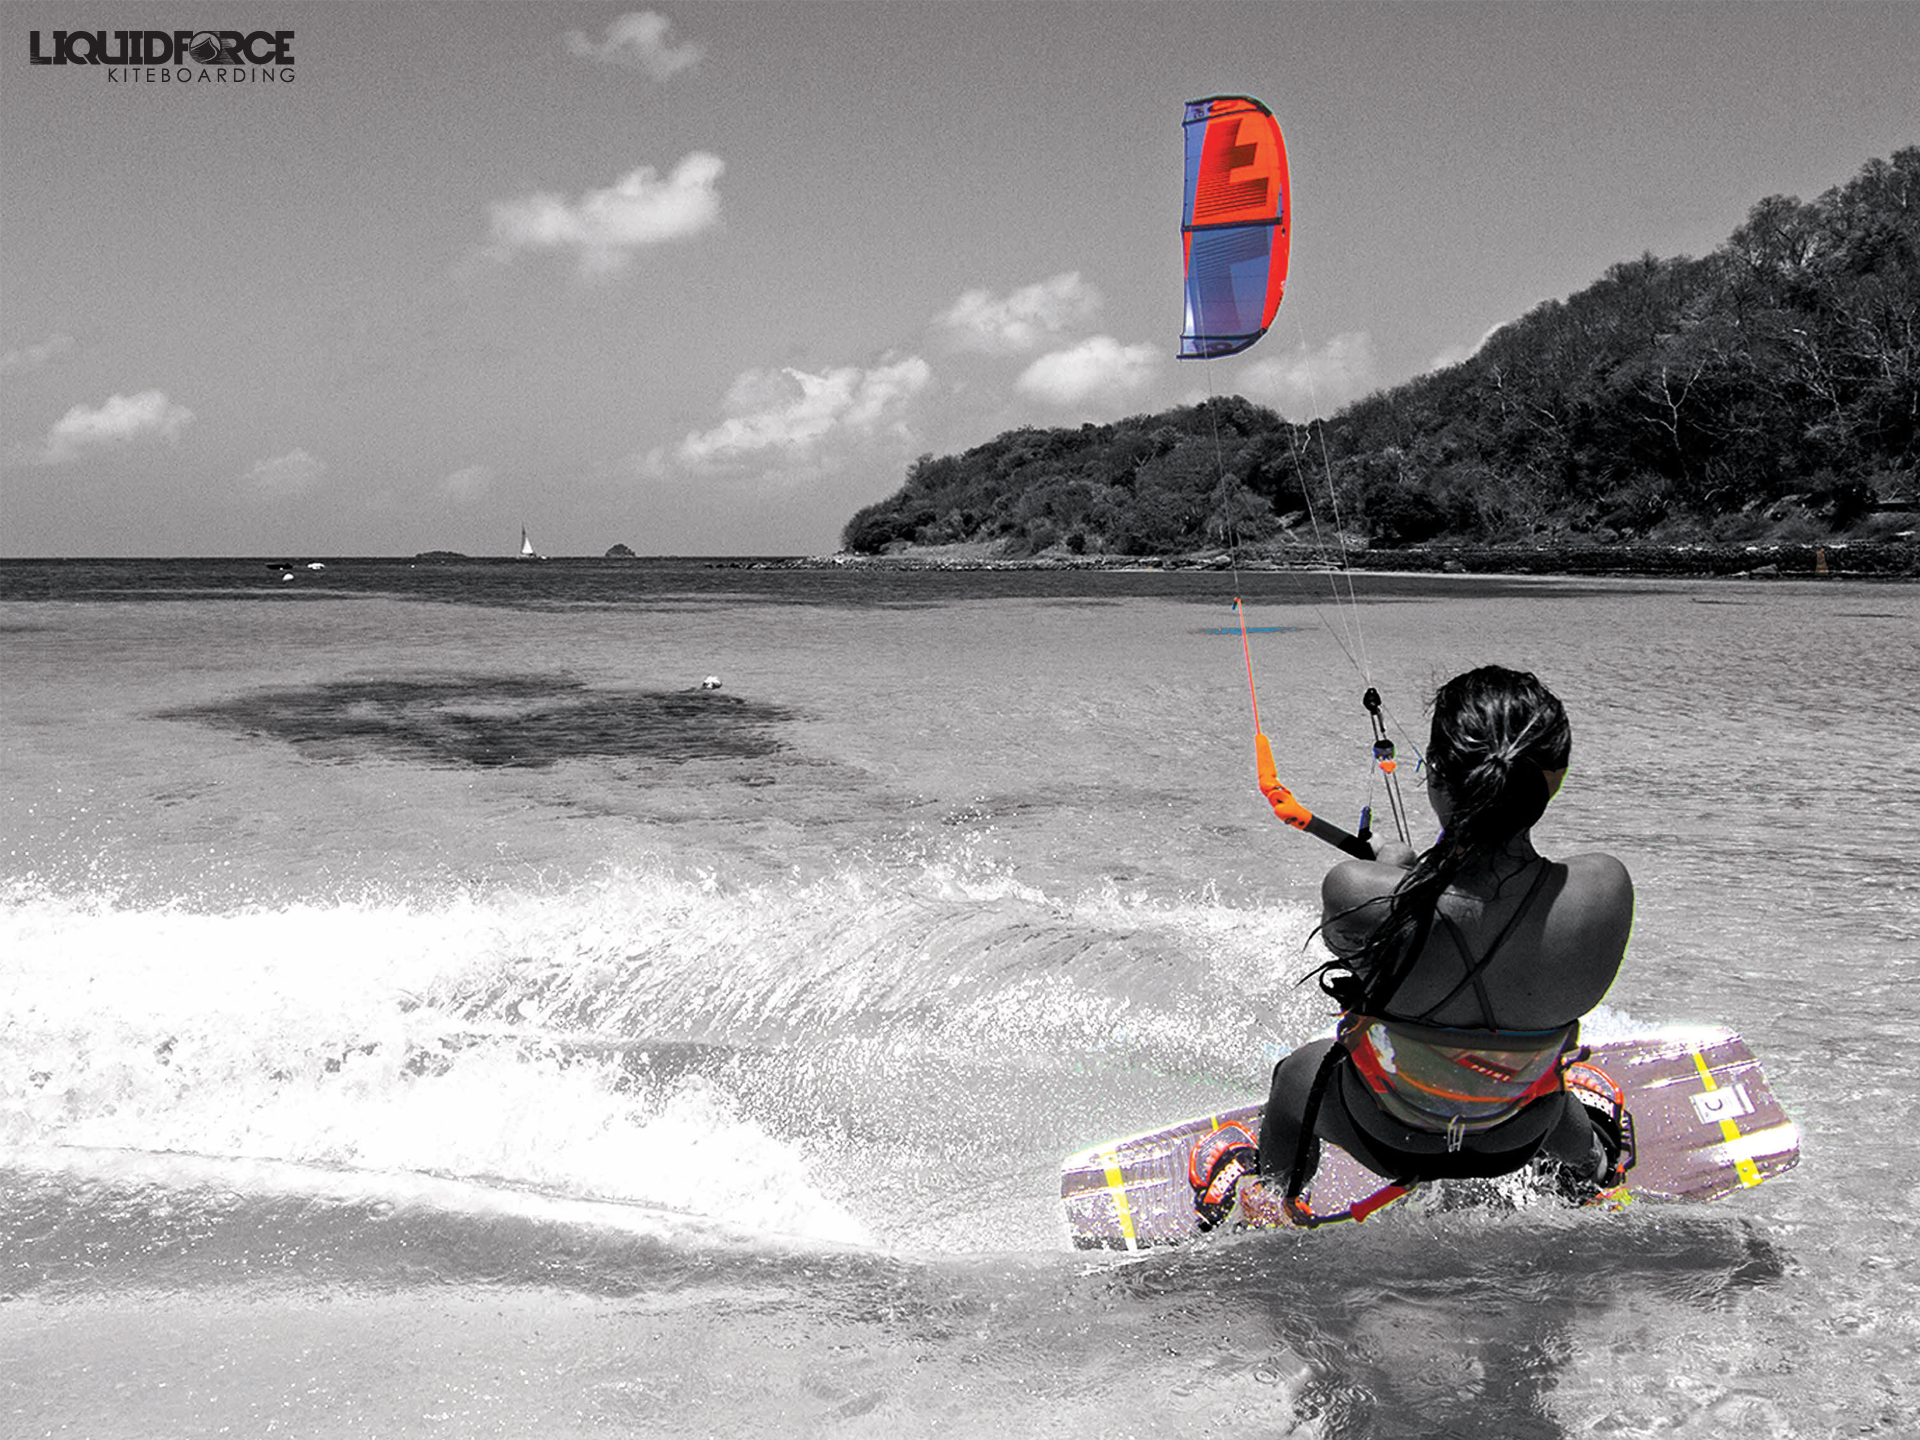 kitesurf wallpaper image - Sensi Graves with the 2015 Liquid Force Envy Kite and riding the carbon element kiteboard - in resolution: Standard 4:3 1920 X 1440